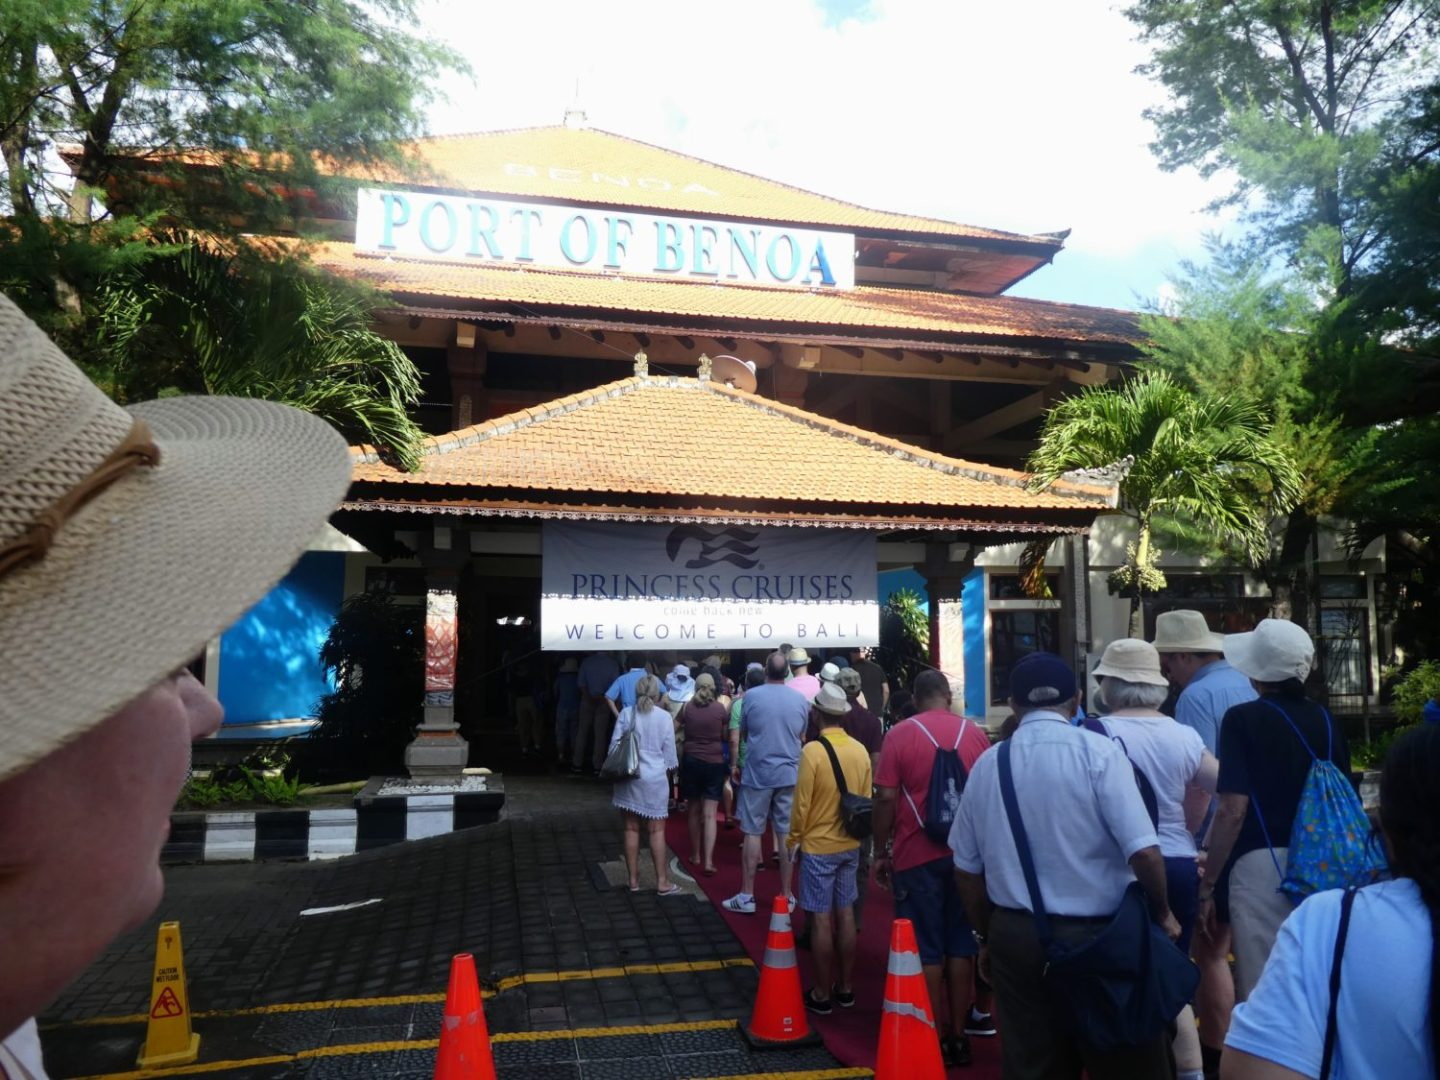 Entrance to the Port of Benoa   Photo Diary: Our Day in Bali   Gluten Free Horizons